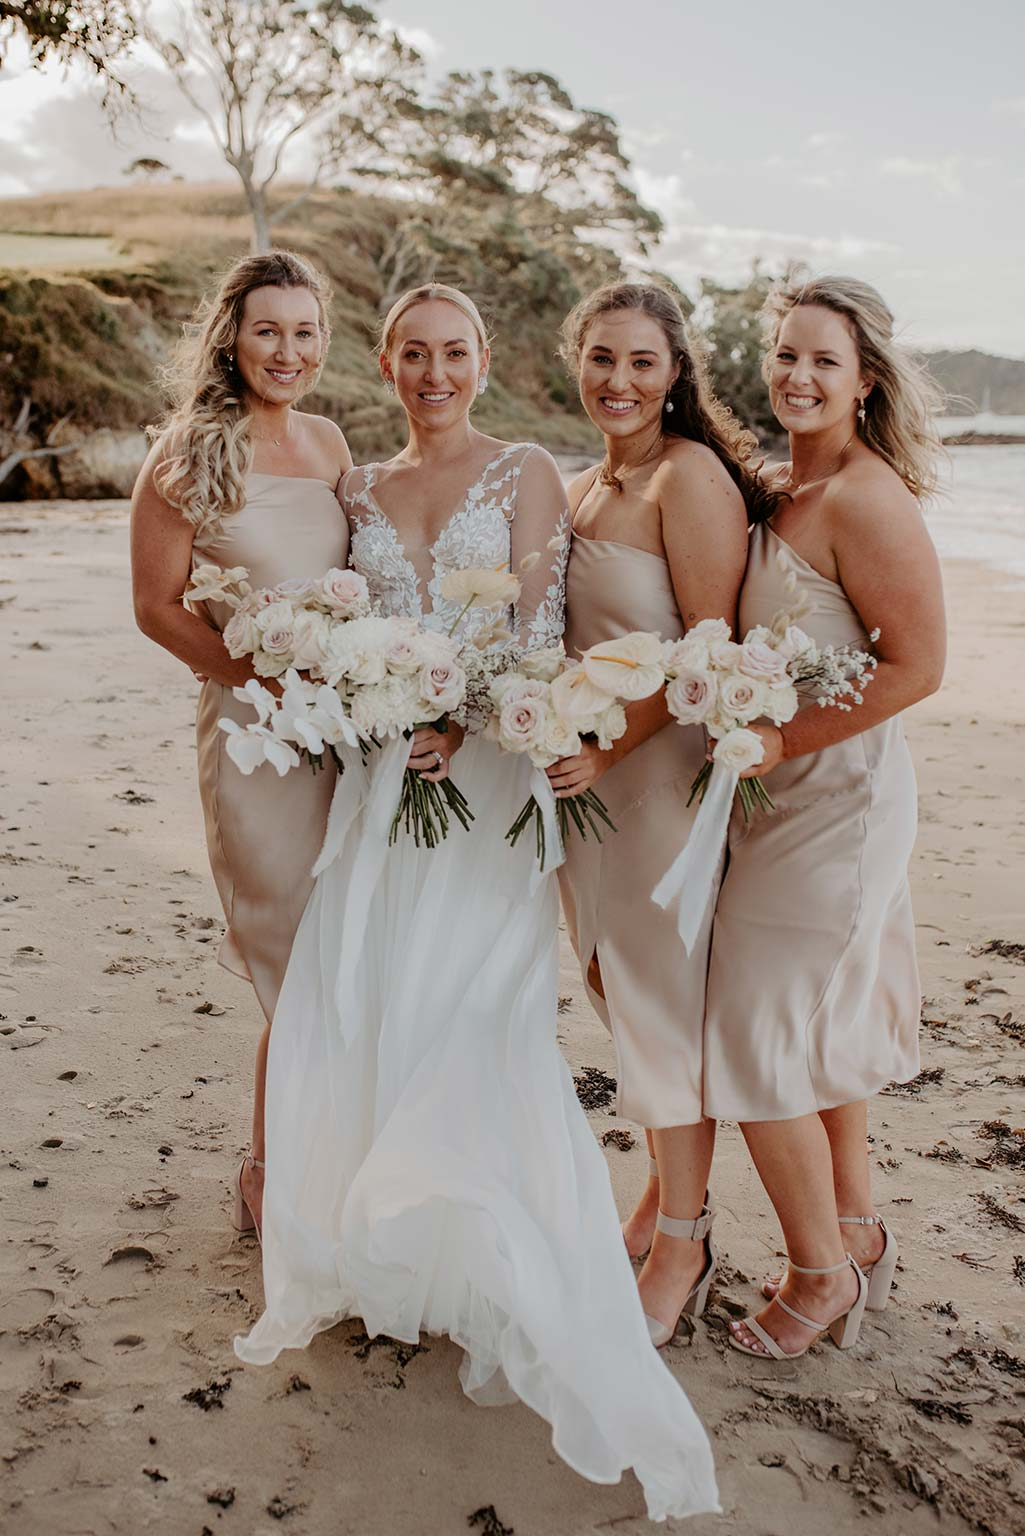 Vinka Design Features Real Weddings - bride poses with bridesmaids - wearing a bespoke Makaira gown with silk-chiffon and tulle overskirt giving her a beautiful train which could be removed later on to reveal a floor length party dress